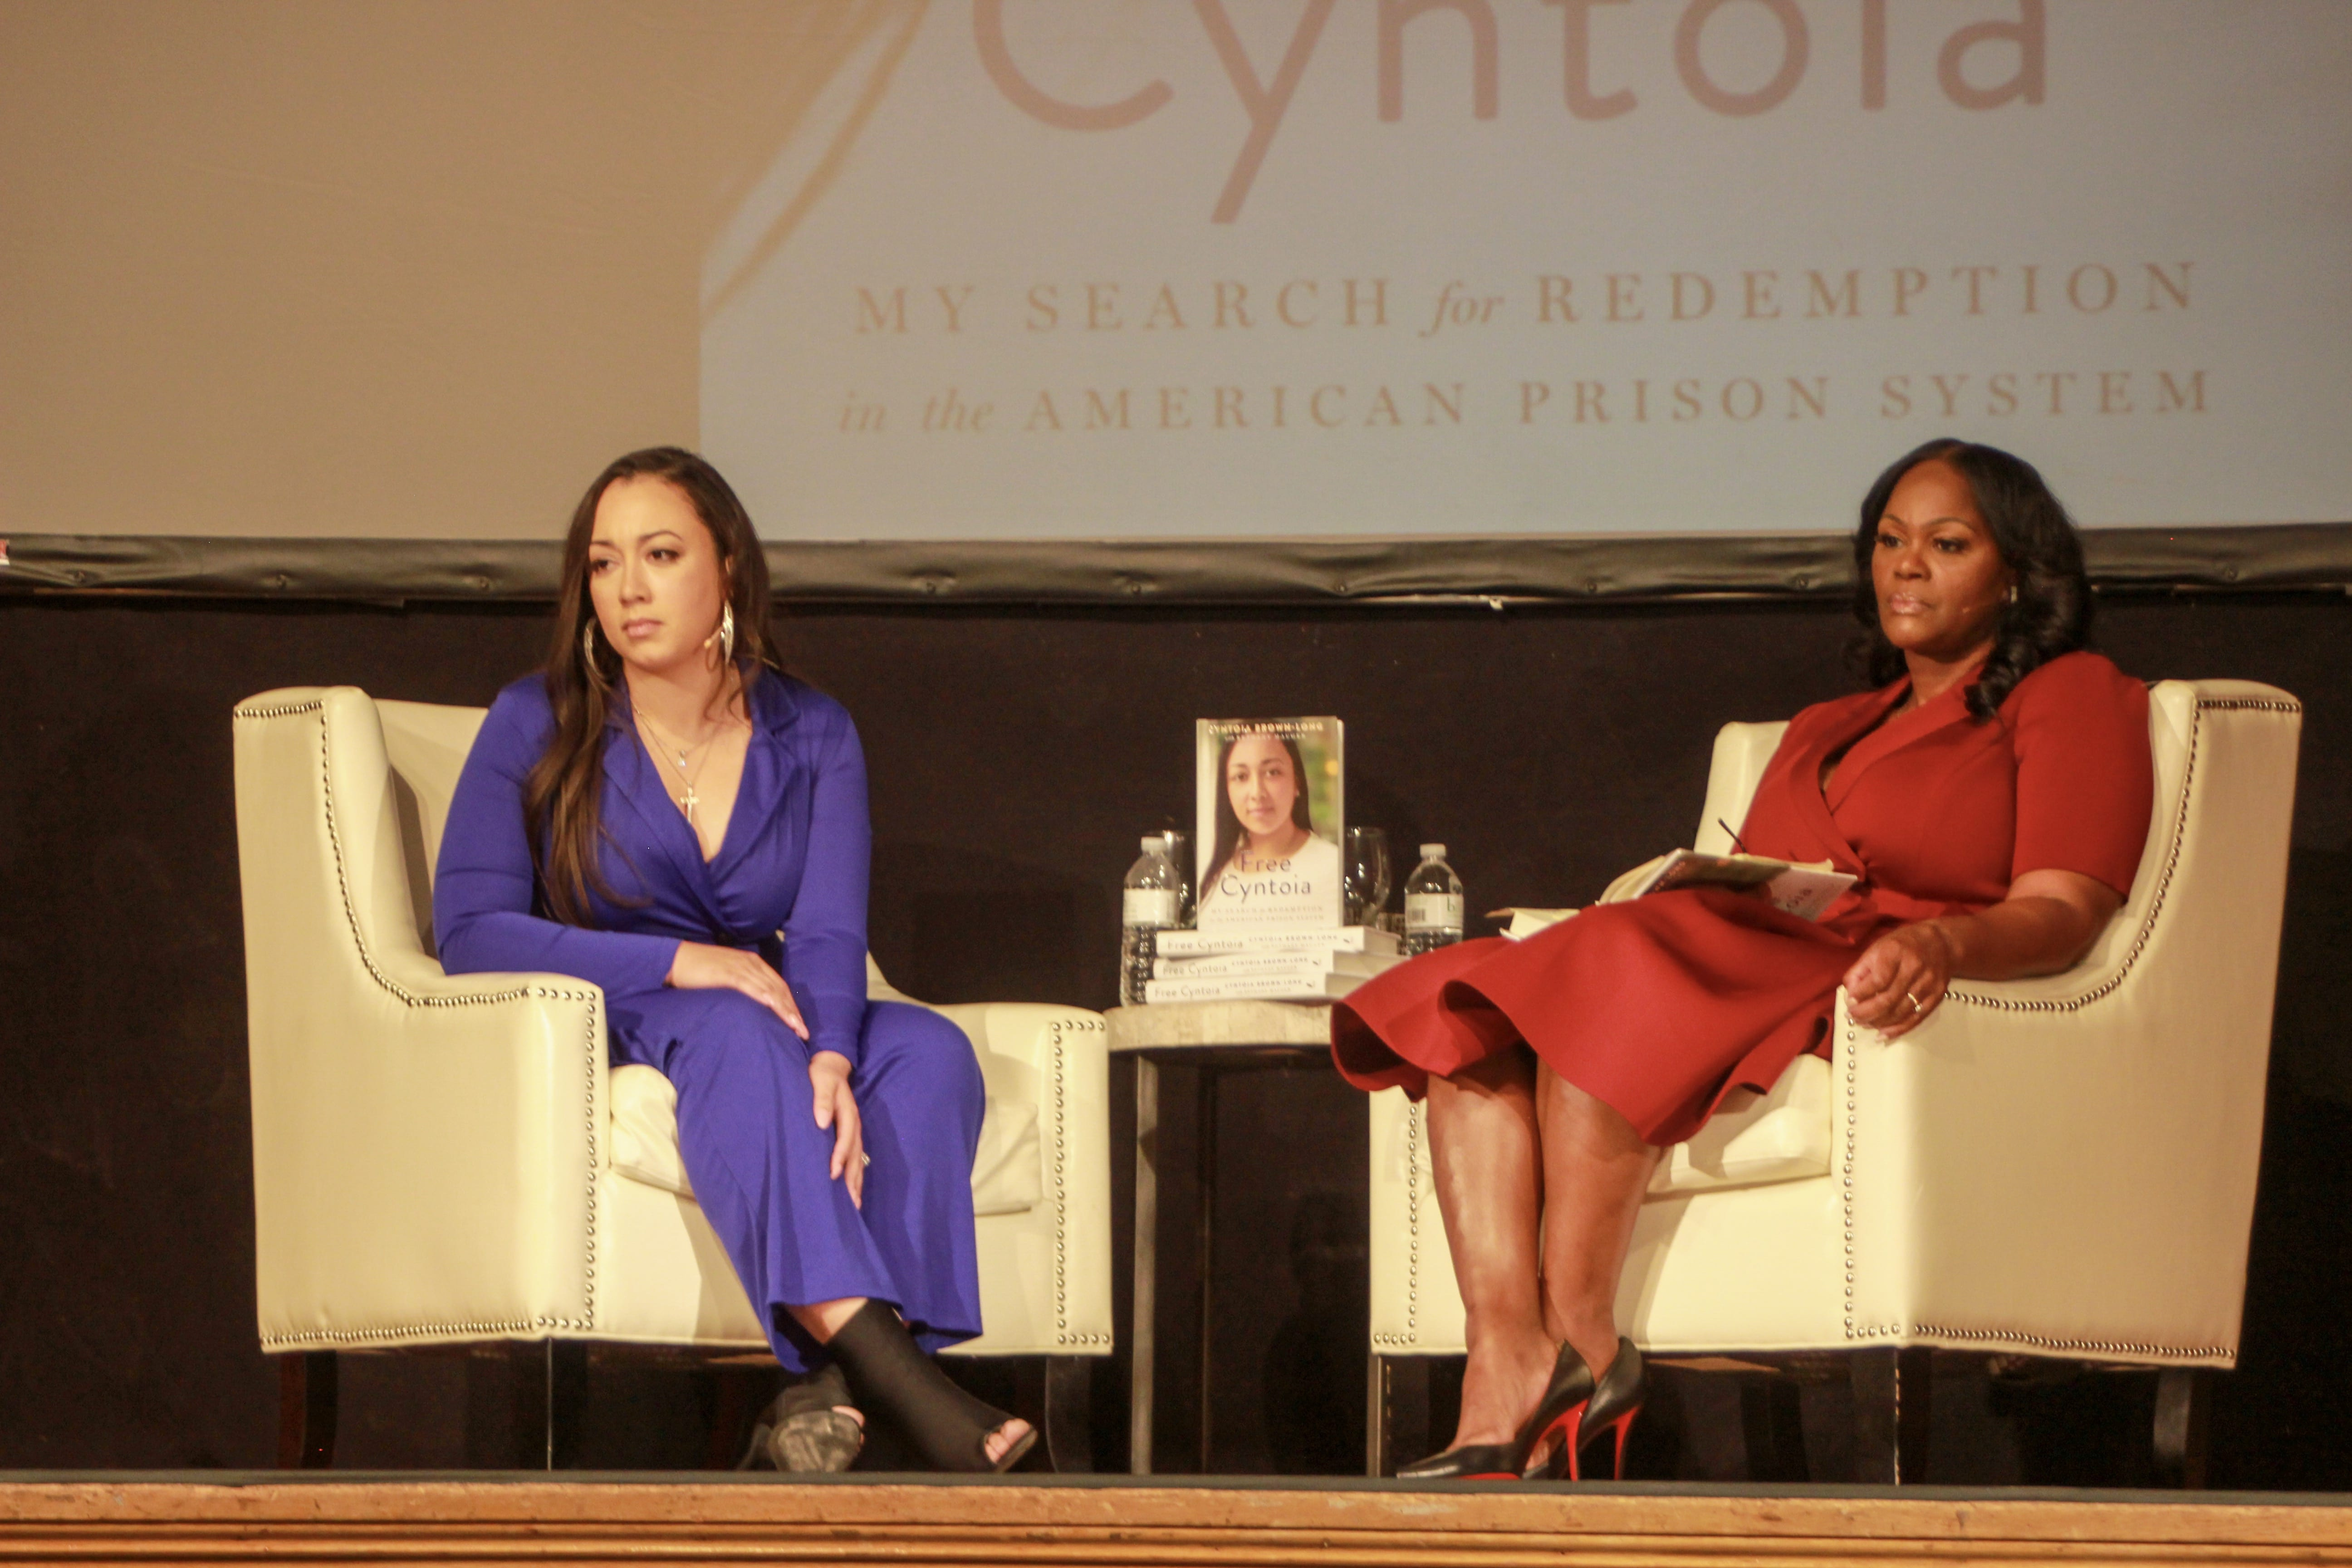 Cyntoia Brown-Long Explains the Power of Faith During First Public Appearance Since Prison Release